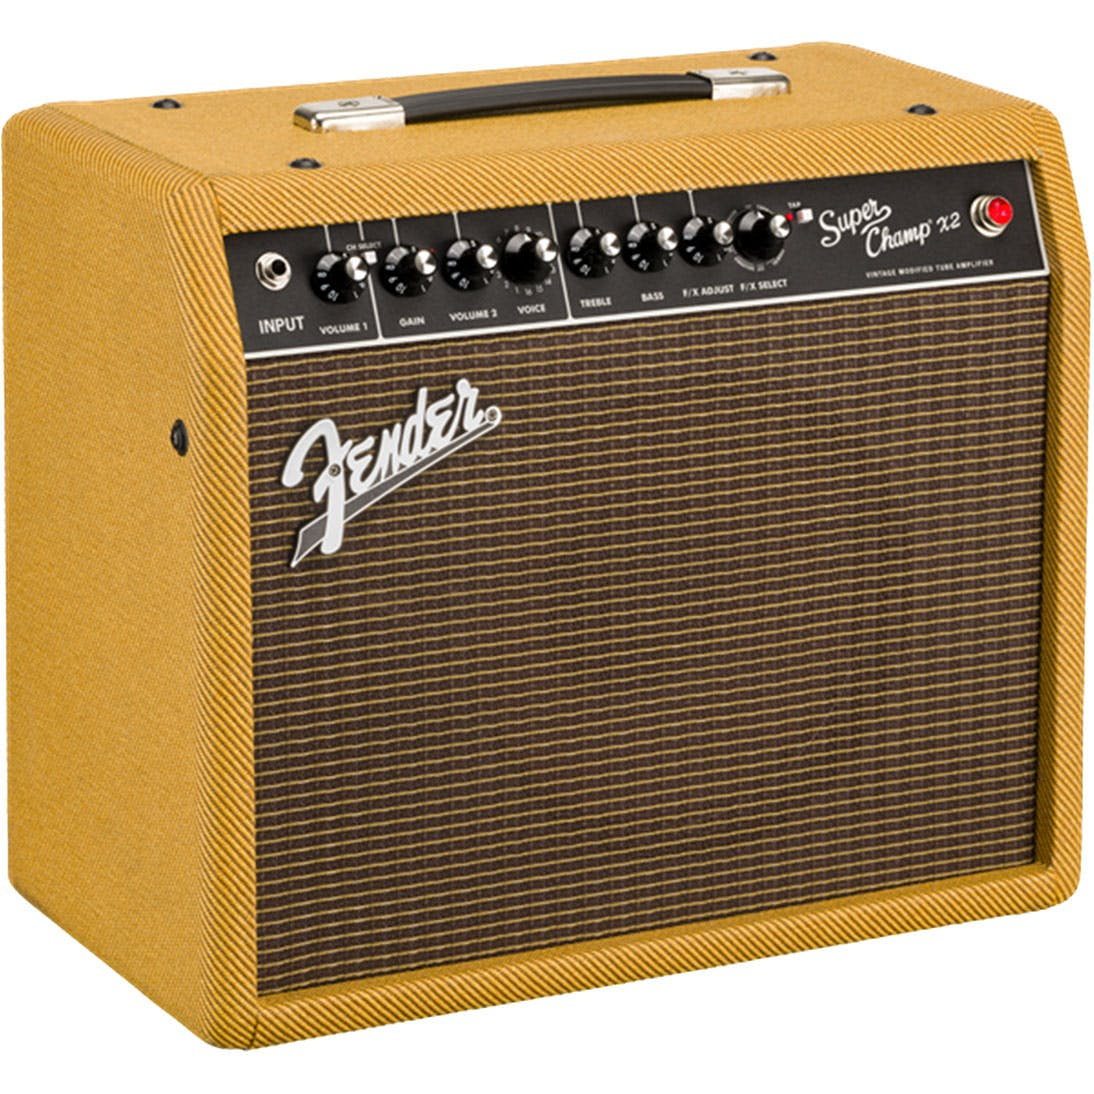 "Fender Super Champ X2 FSR 15-watt 1x10"" Tube Combo Amp with Eminence Ragin Cajun Speaker Lacquered Tweed 